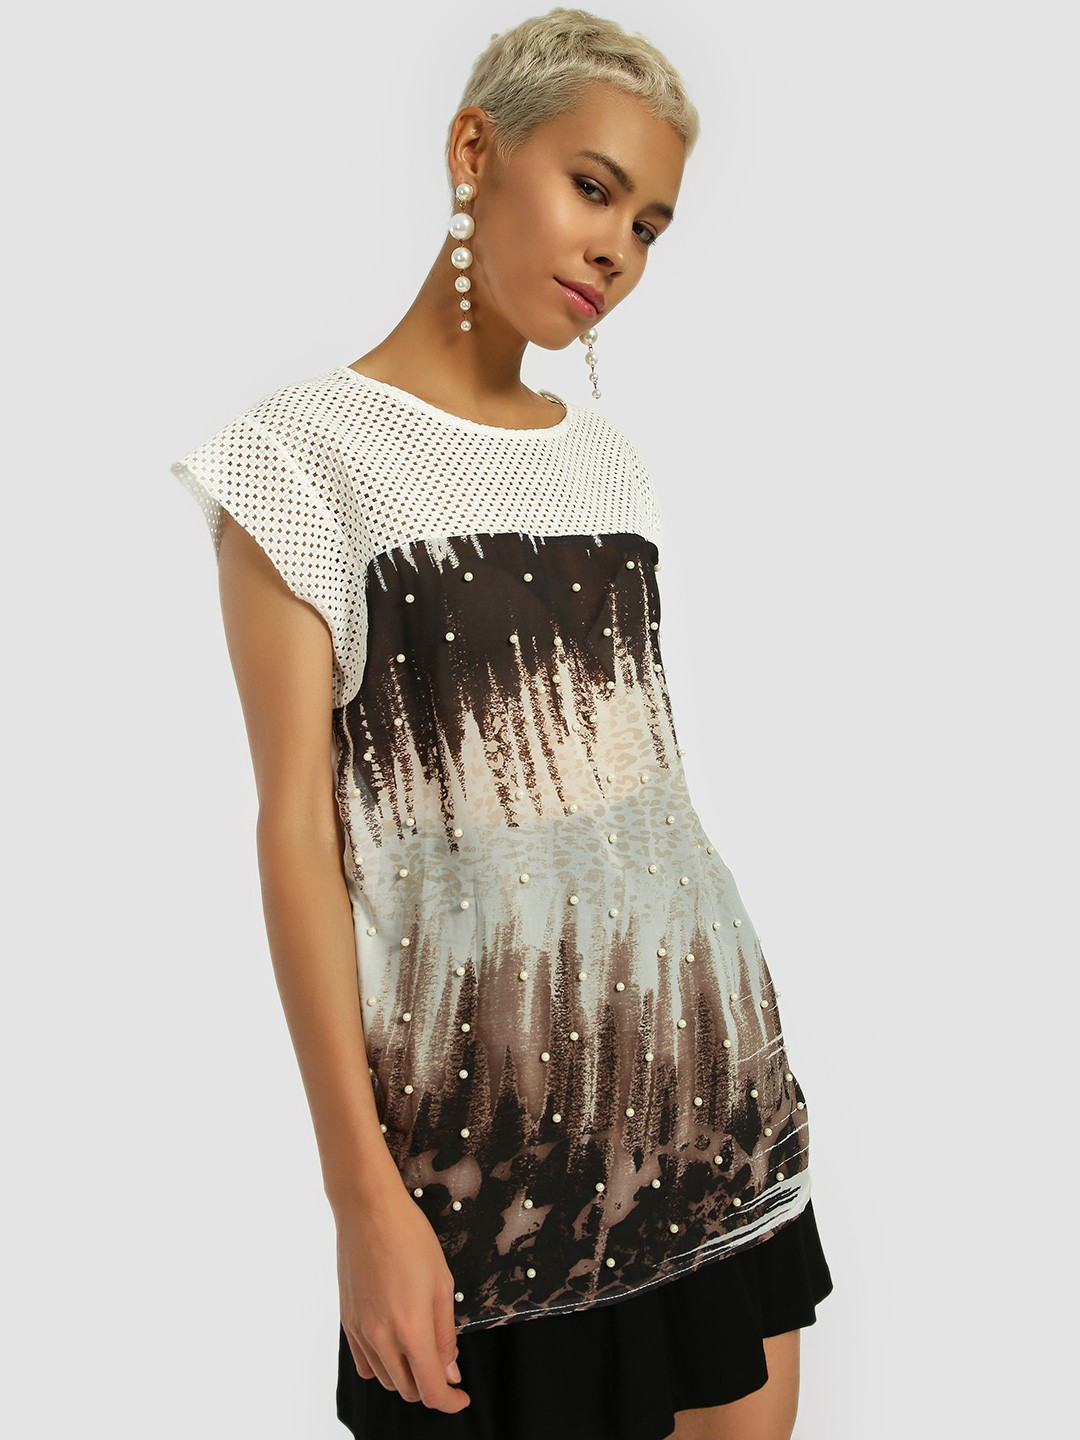 Privy League White Pearl Embellished Printed Longline Blouse 1